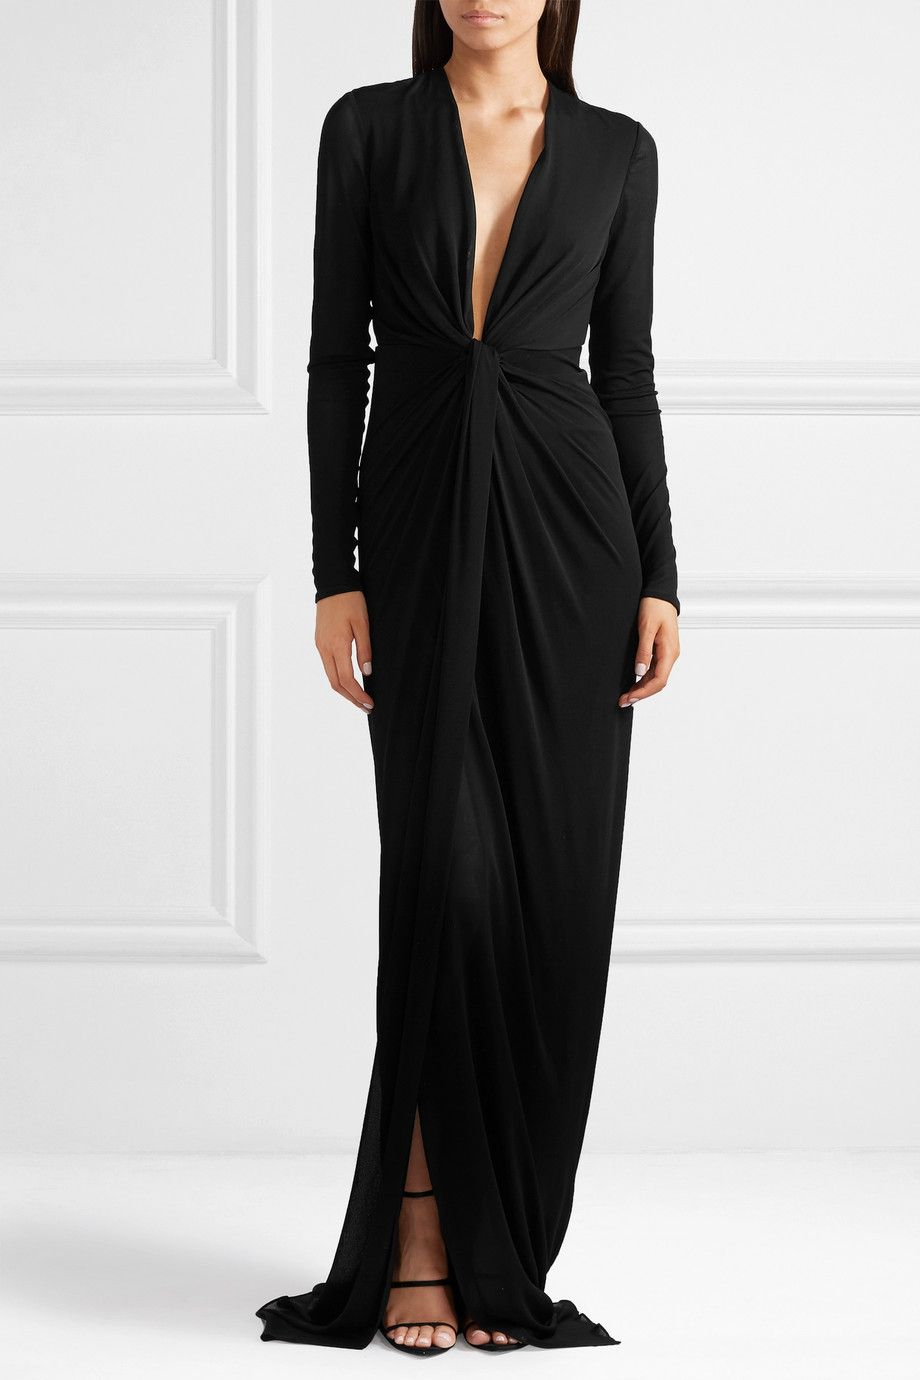 Tom Ford Twist Front Stretch Jersey Gown Net A Porter Com